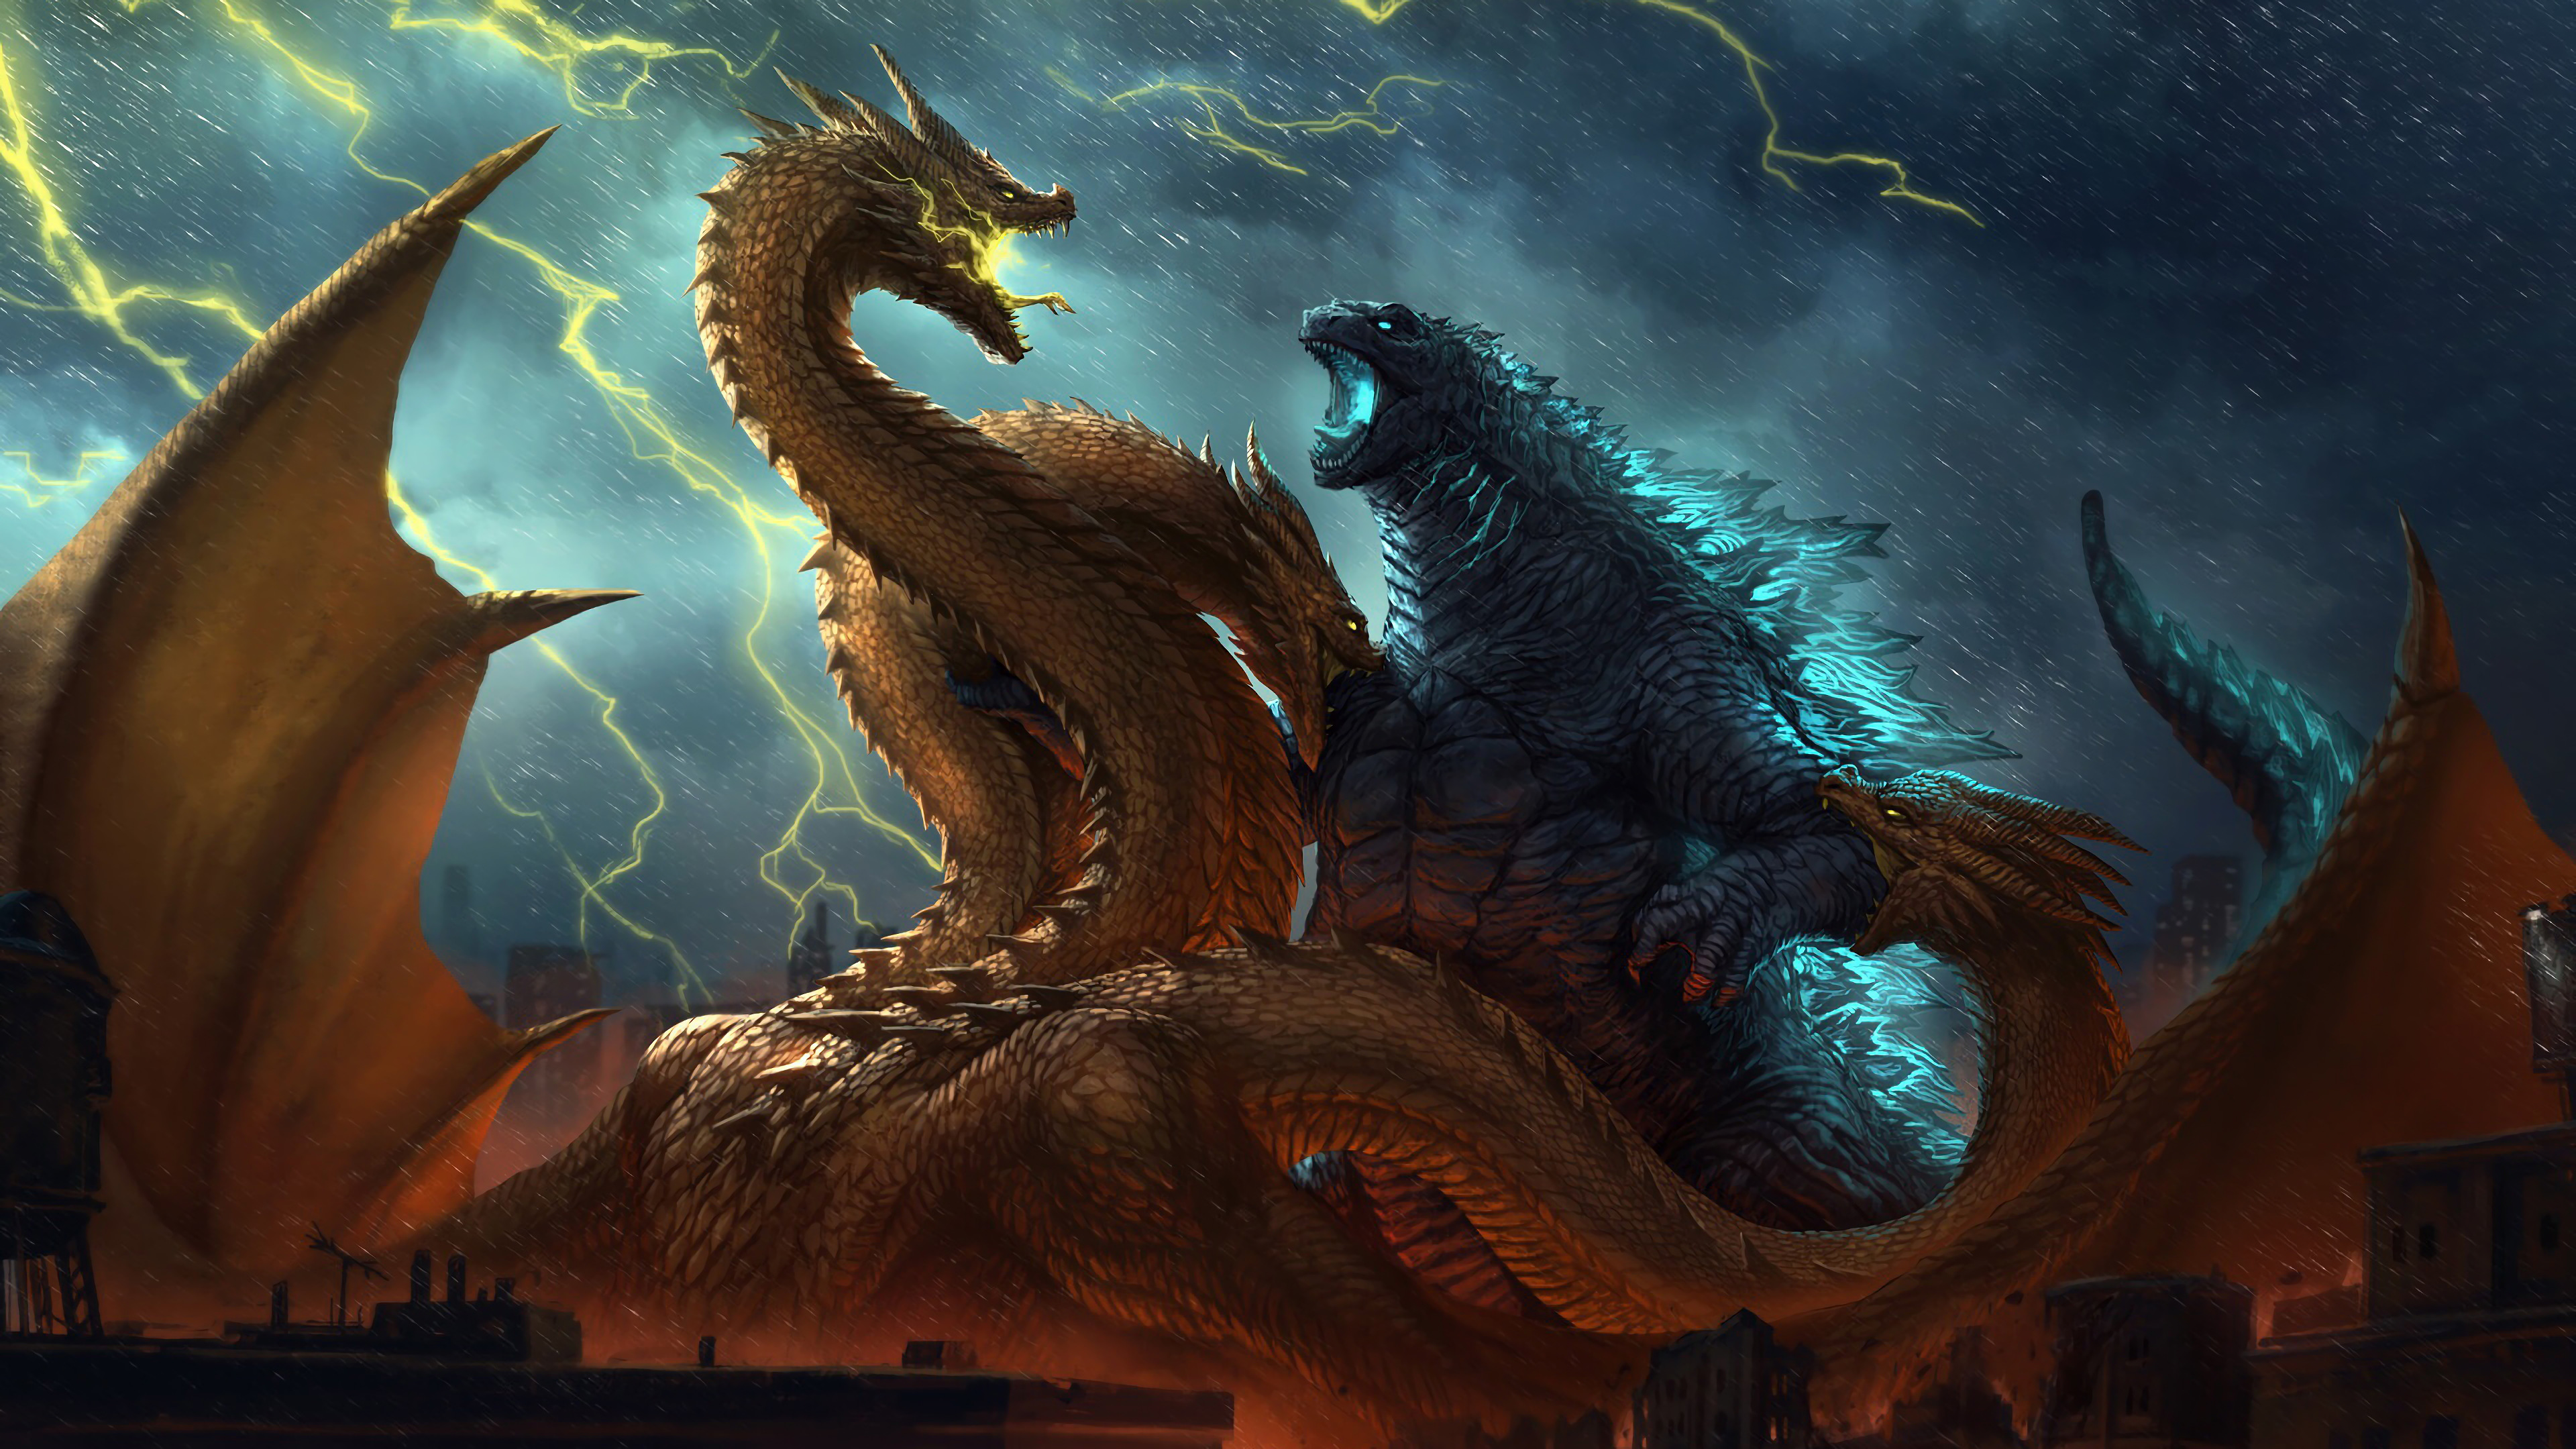 Godzilla Vs King Ghidorah Godzilla King Of The Monsters